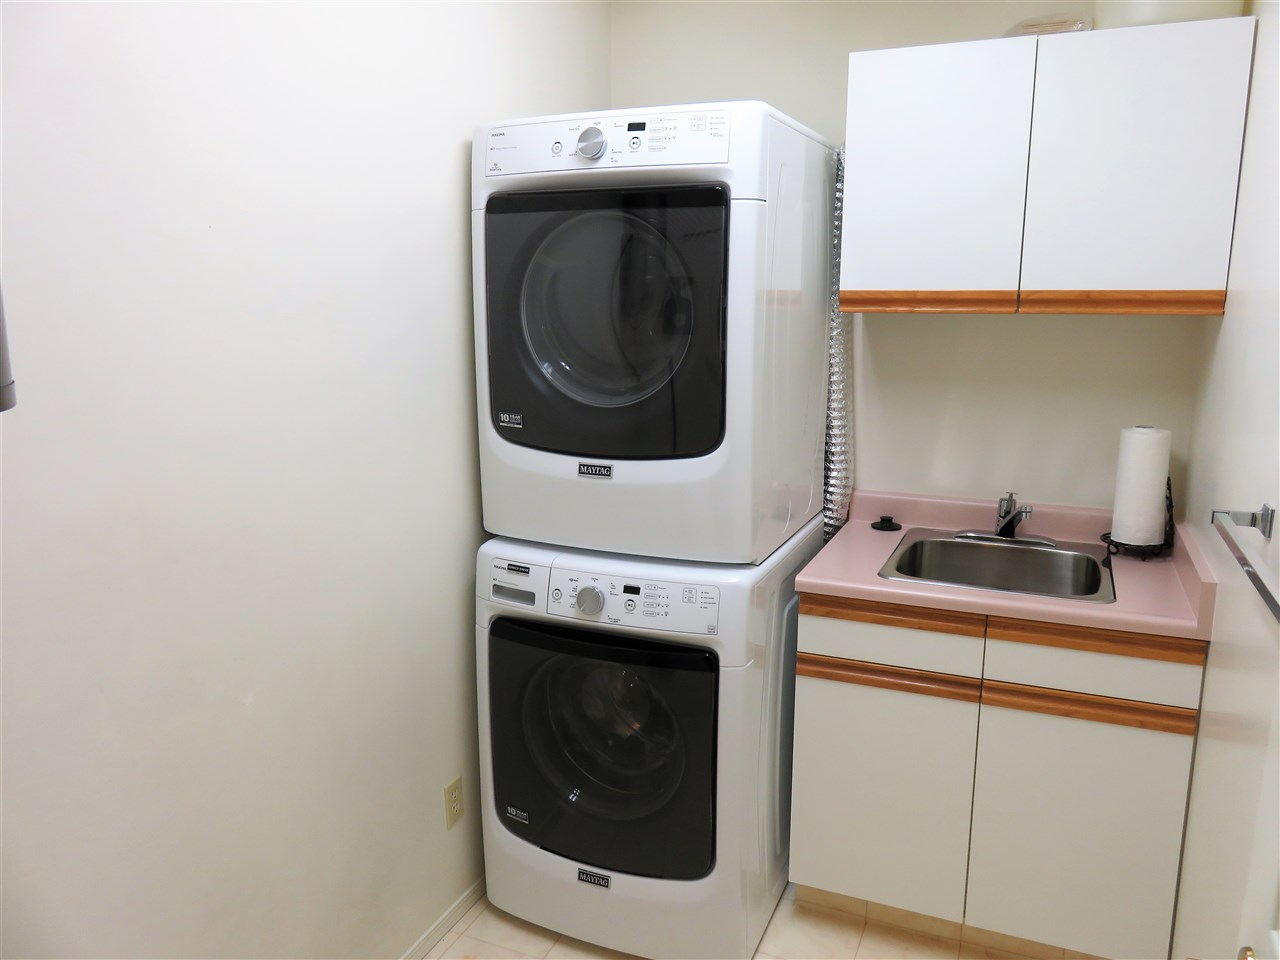 Here is your Laundry Room! Note the newer HE FRONT LOAD WASHER & DRYER! :)